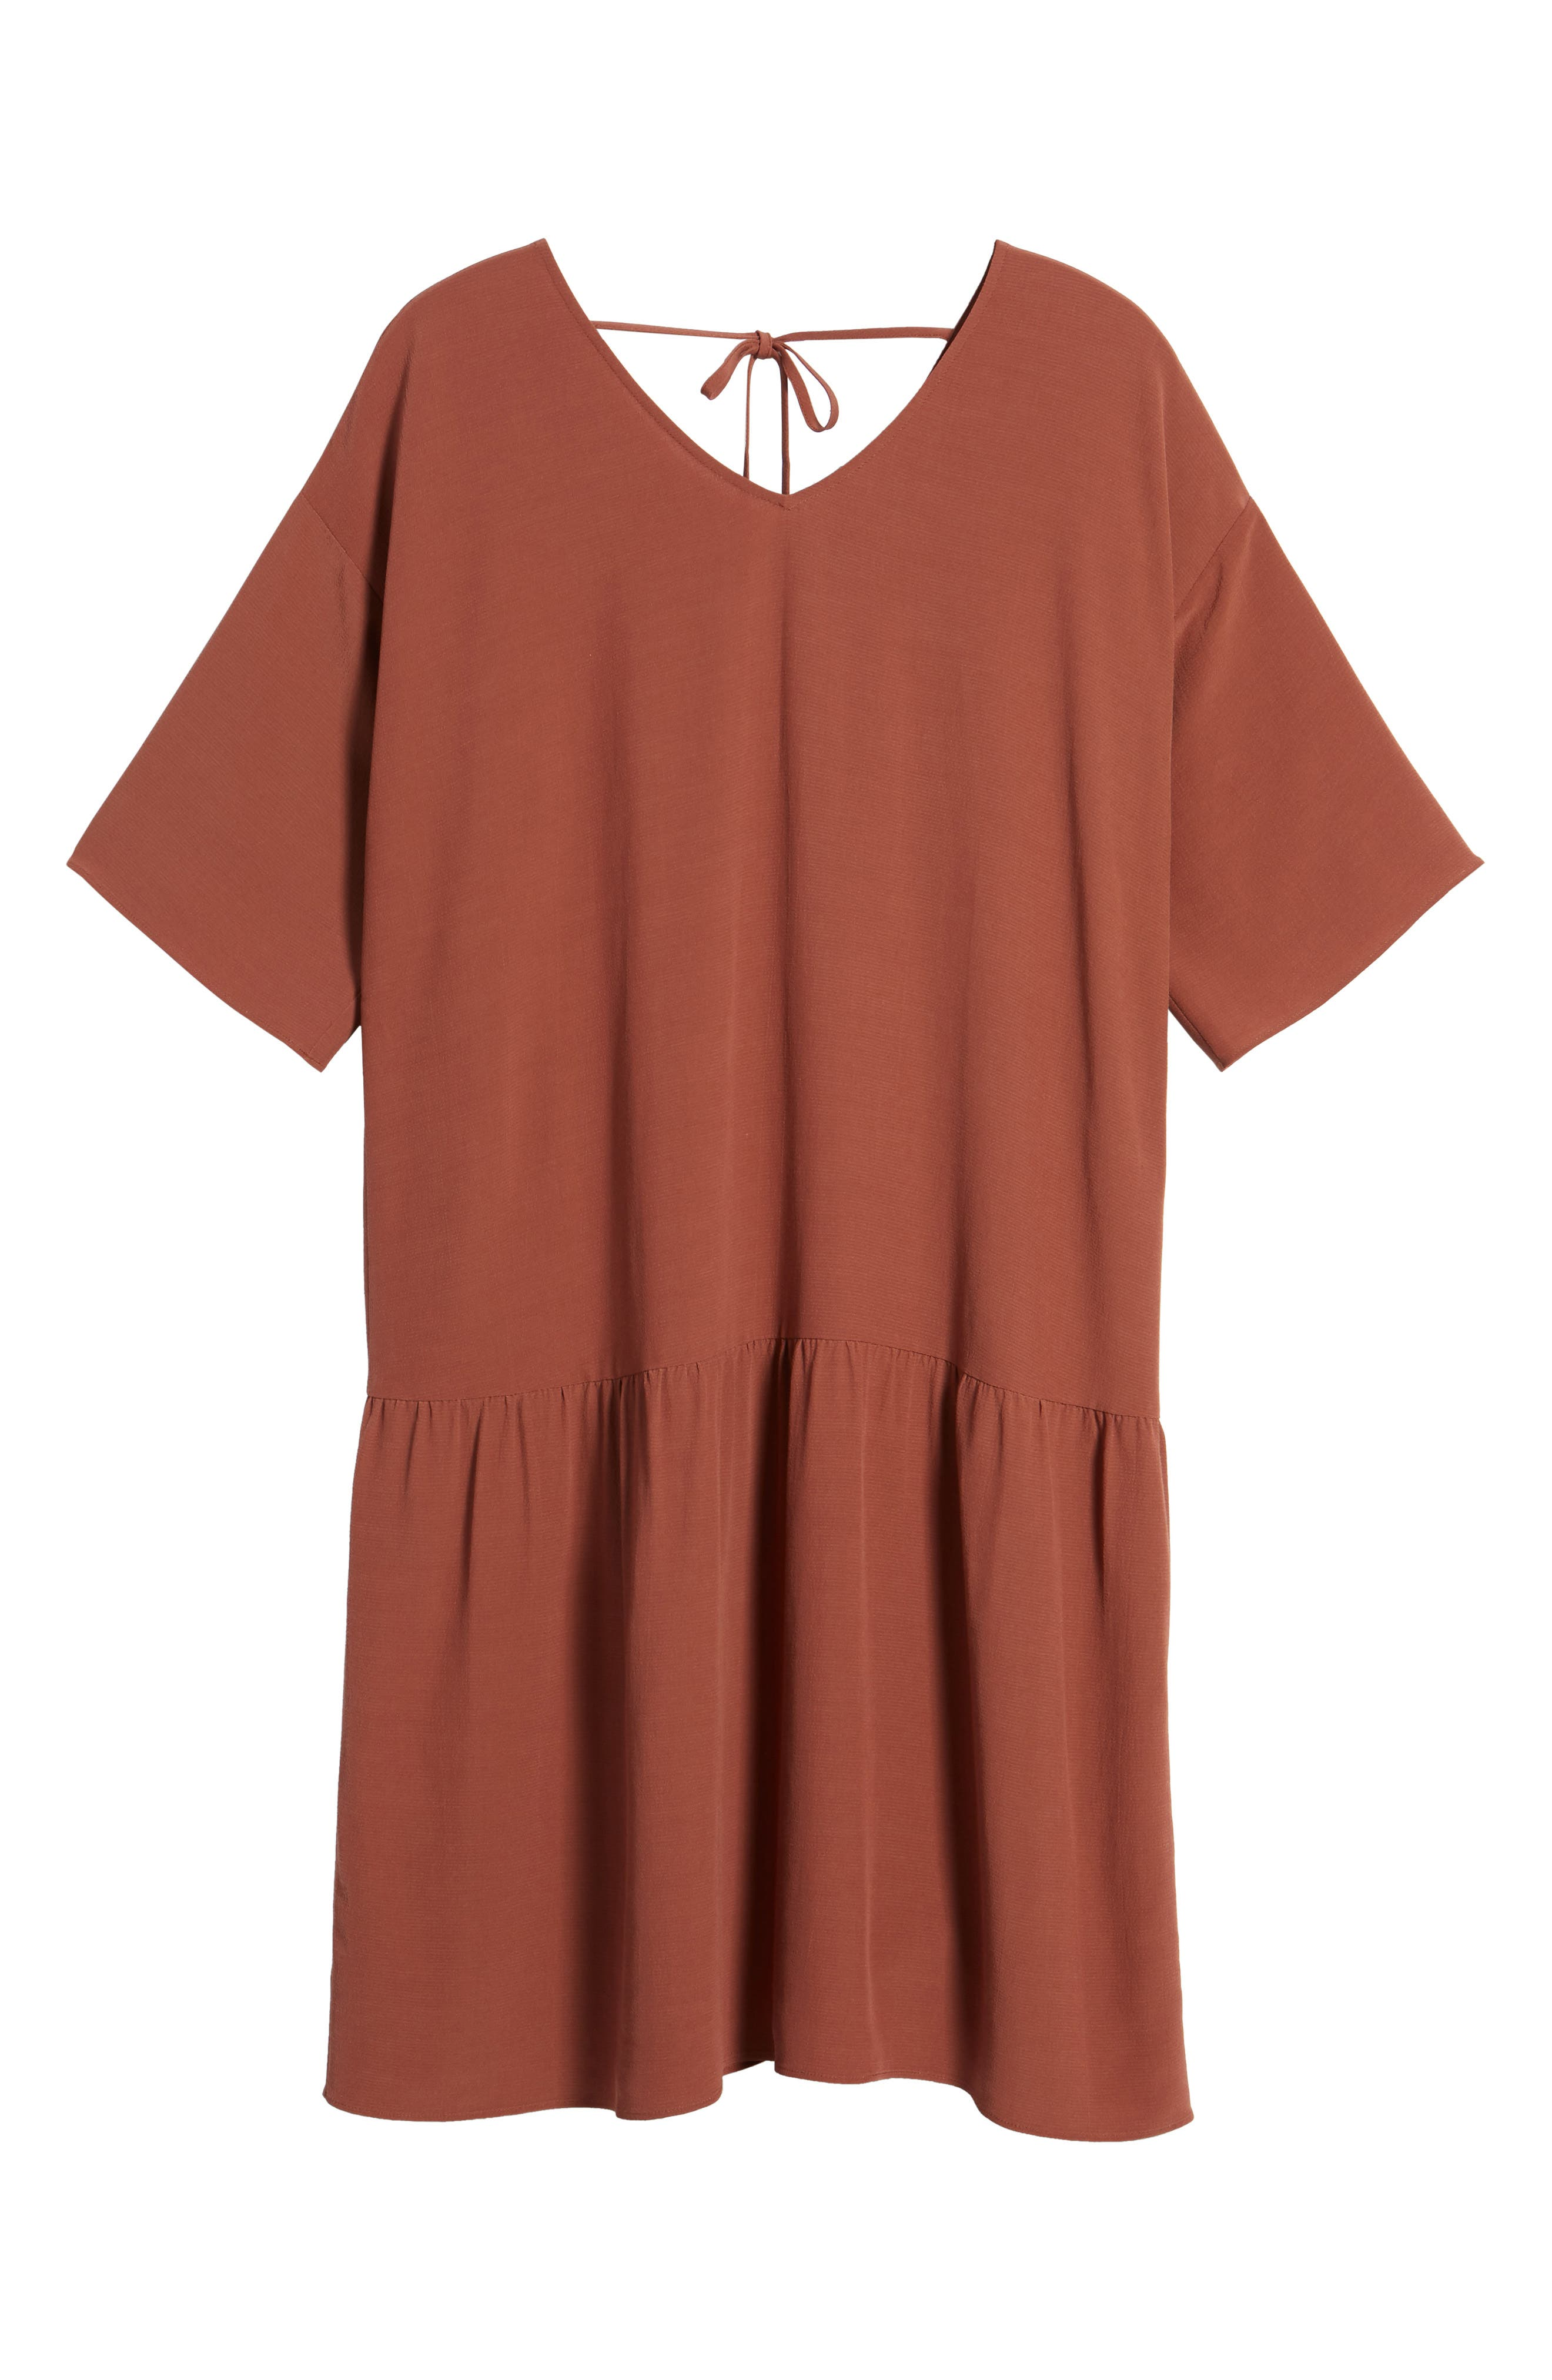 Drop Waist Tencel<sup>®</sup> Lyocell Blend Dress,                             Alternate thumbnail 7, color,                             Russet